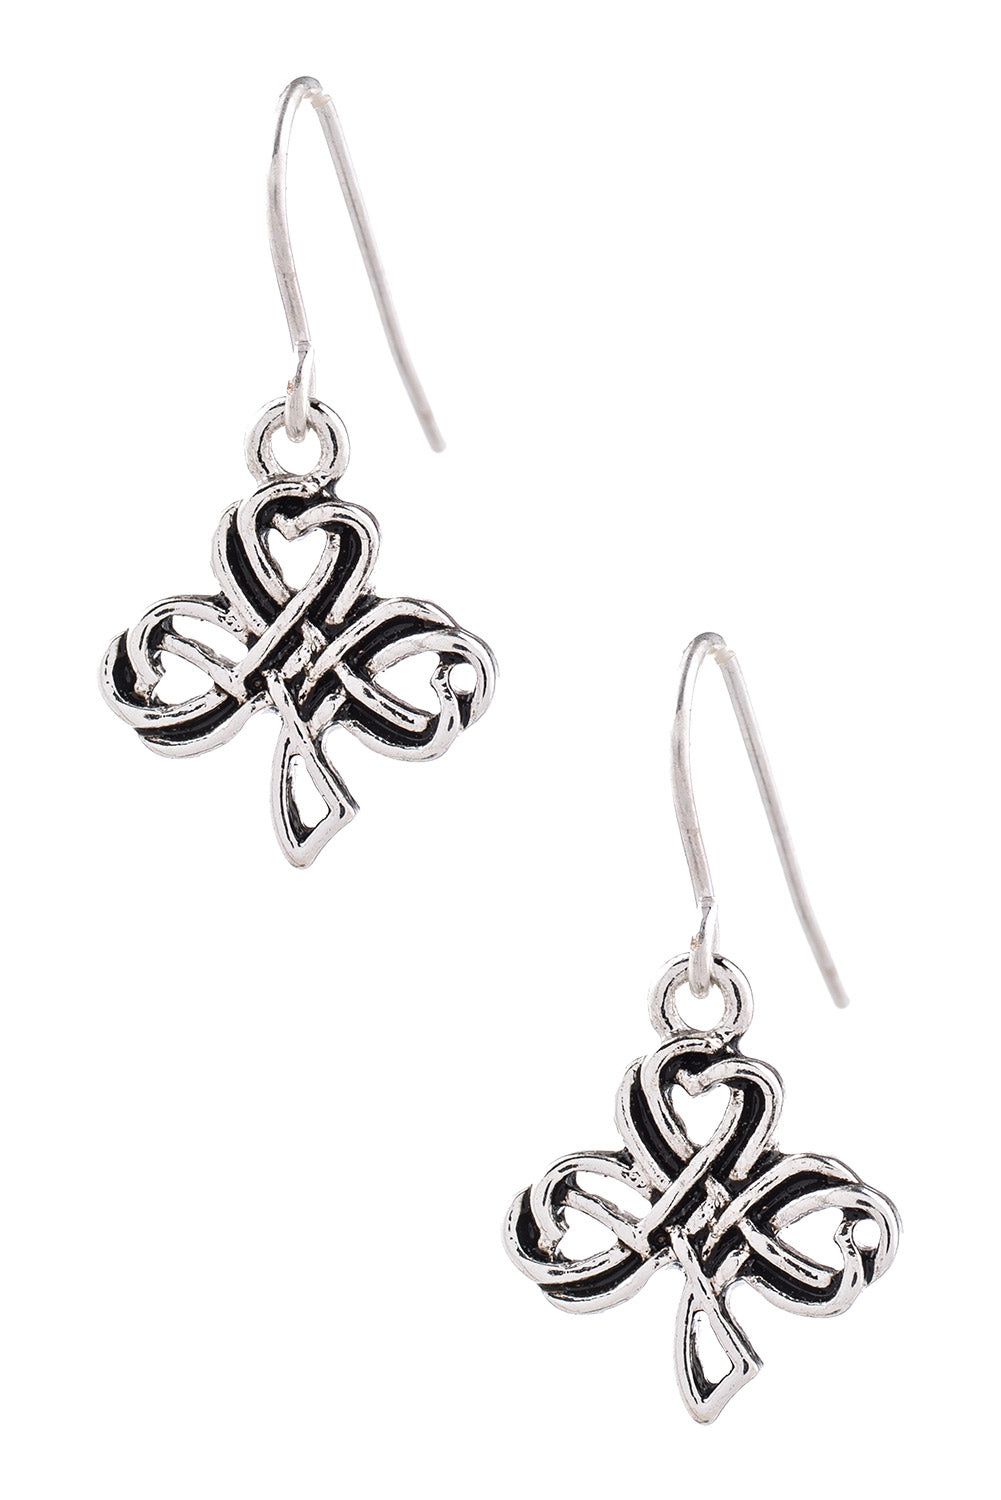 Type 2 Celtic Knot Earrings